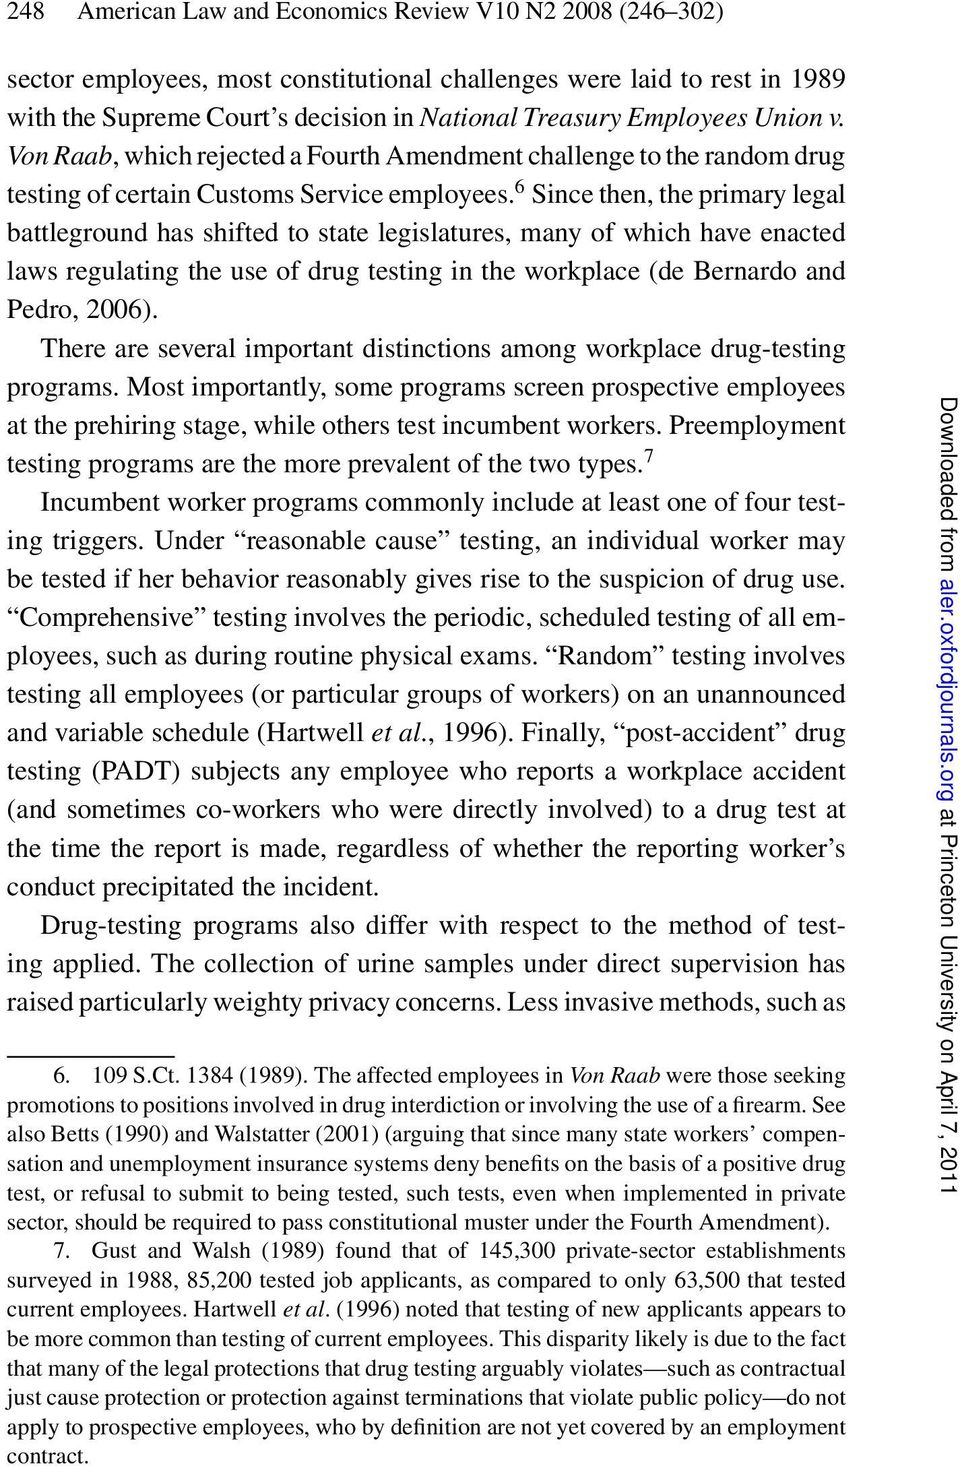 6 Since then, the primary legal battleground has shifted to state legislatures, many of which have enacted laws regulating the use of drug testing in the workplace (de Bernardo and Pedro, 2006).